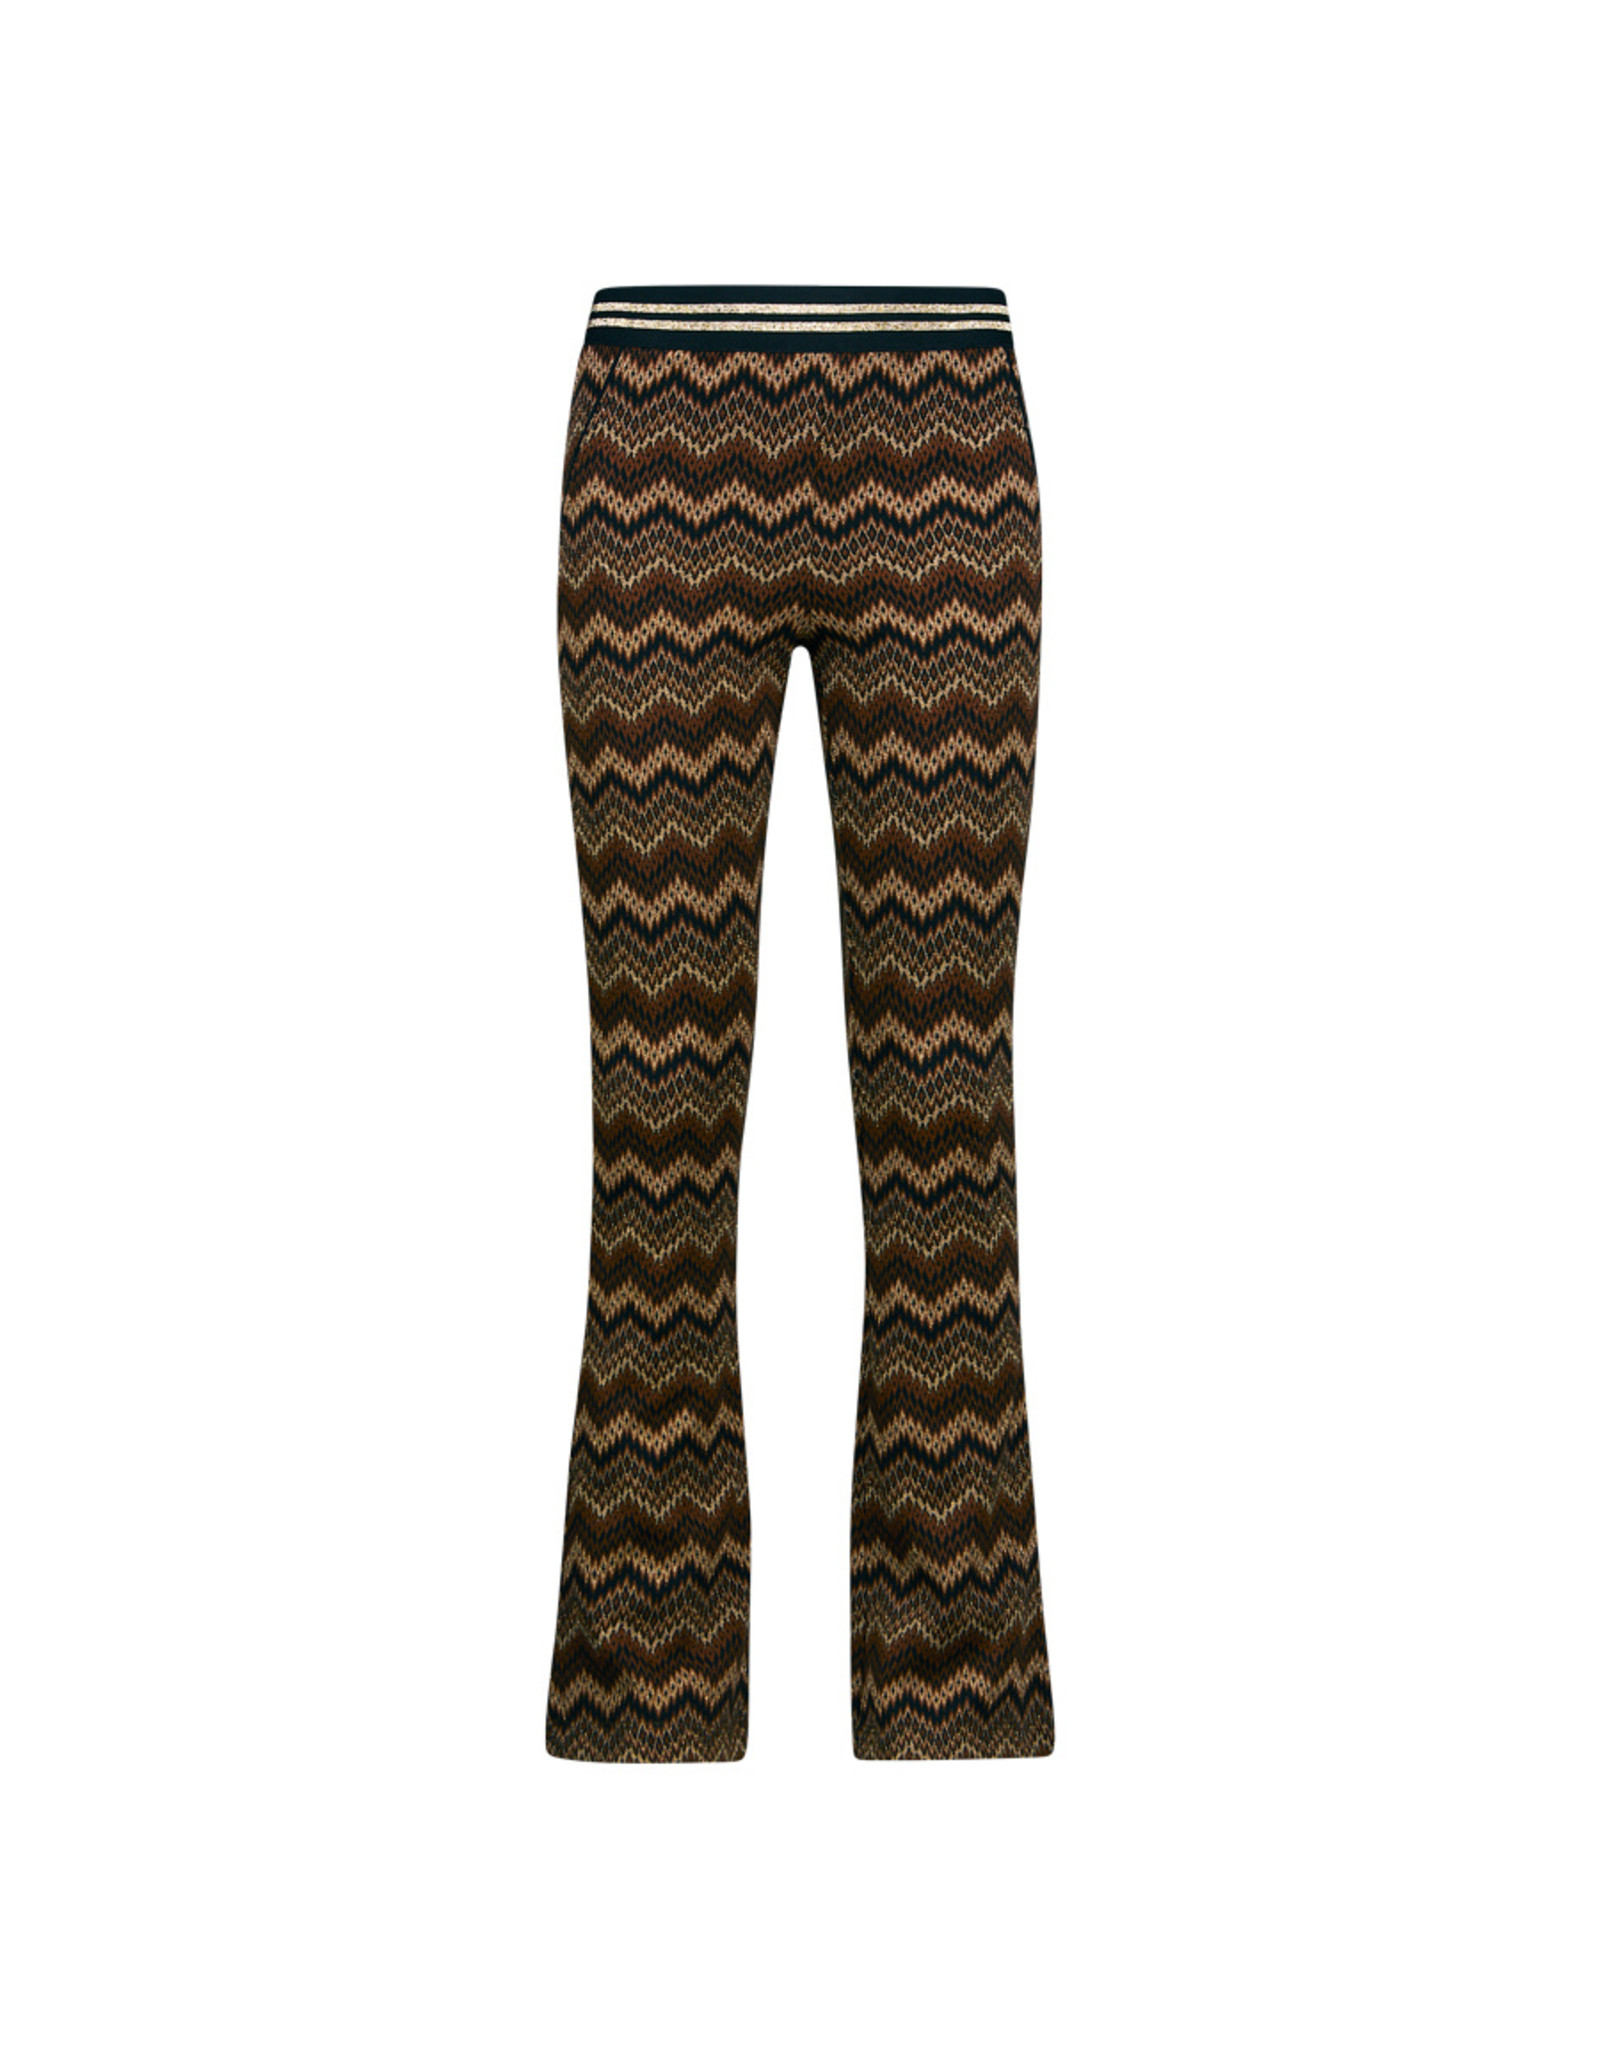 Retour Jeans Girls Cherry Pants Toffee